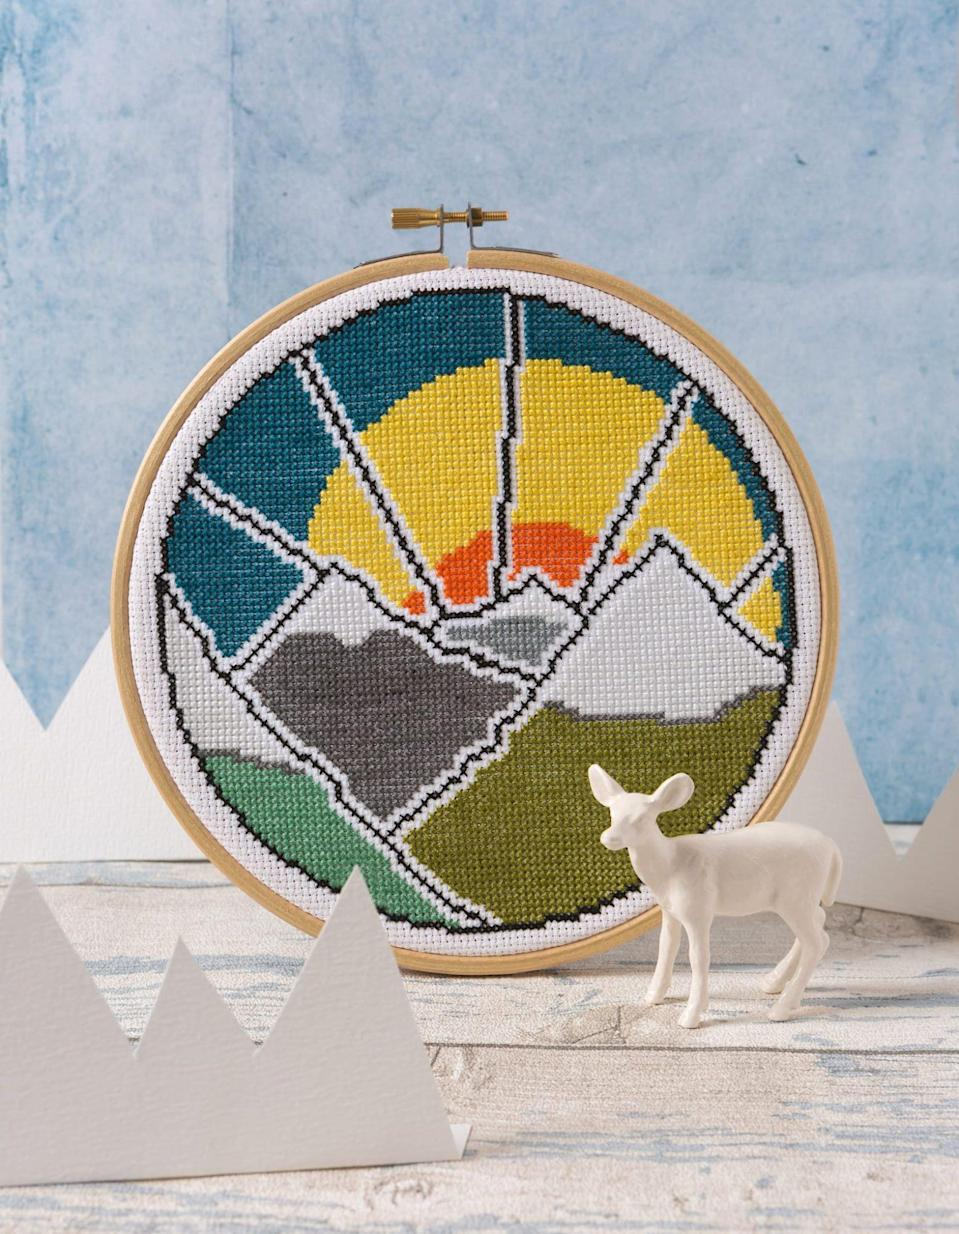 """<p>The bright landscape by Stephanie Carswell is achievable with just one stitch (no back stitching or quarter stitches required) and the color blocks and simple lines make the pattern easy to follow.</p> <p><strong><em>Shop Now:</em></strong><em> Hawthorn Handmade Mountain Adventure Cross Stitch Kit, $27, </em><a href=""""https://fancytigercrafts.com/collections/kits/products/mountain-adventure-cross-stitch-kit"""" rel=""""nofollow noopener"""" target=""""_blank"""" data-ylk=""""slk:fancytigercrafts.com"""" class=""""link rapid-noclick-resp""""><em>fancytigercrafts.com</em></a><em>.</em></p>"""